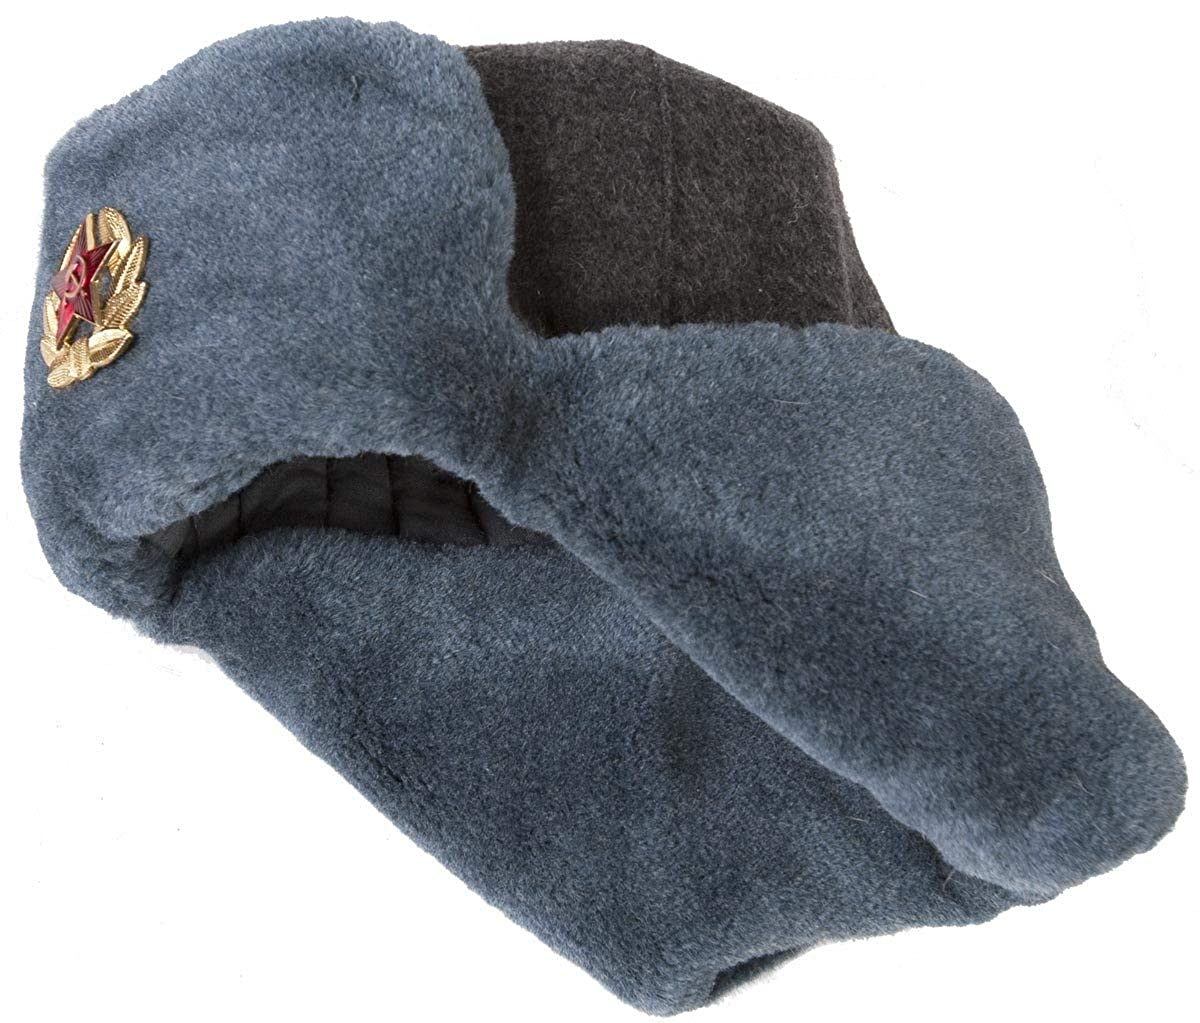 484aaa086a0b18 Authentic Russian Army Ushanka Winter Hat, with Soviet Army soldier  insignia at Amazon Men's Clothing store: Cold Weather Hats